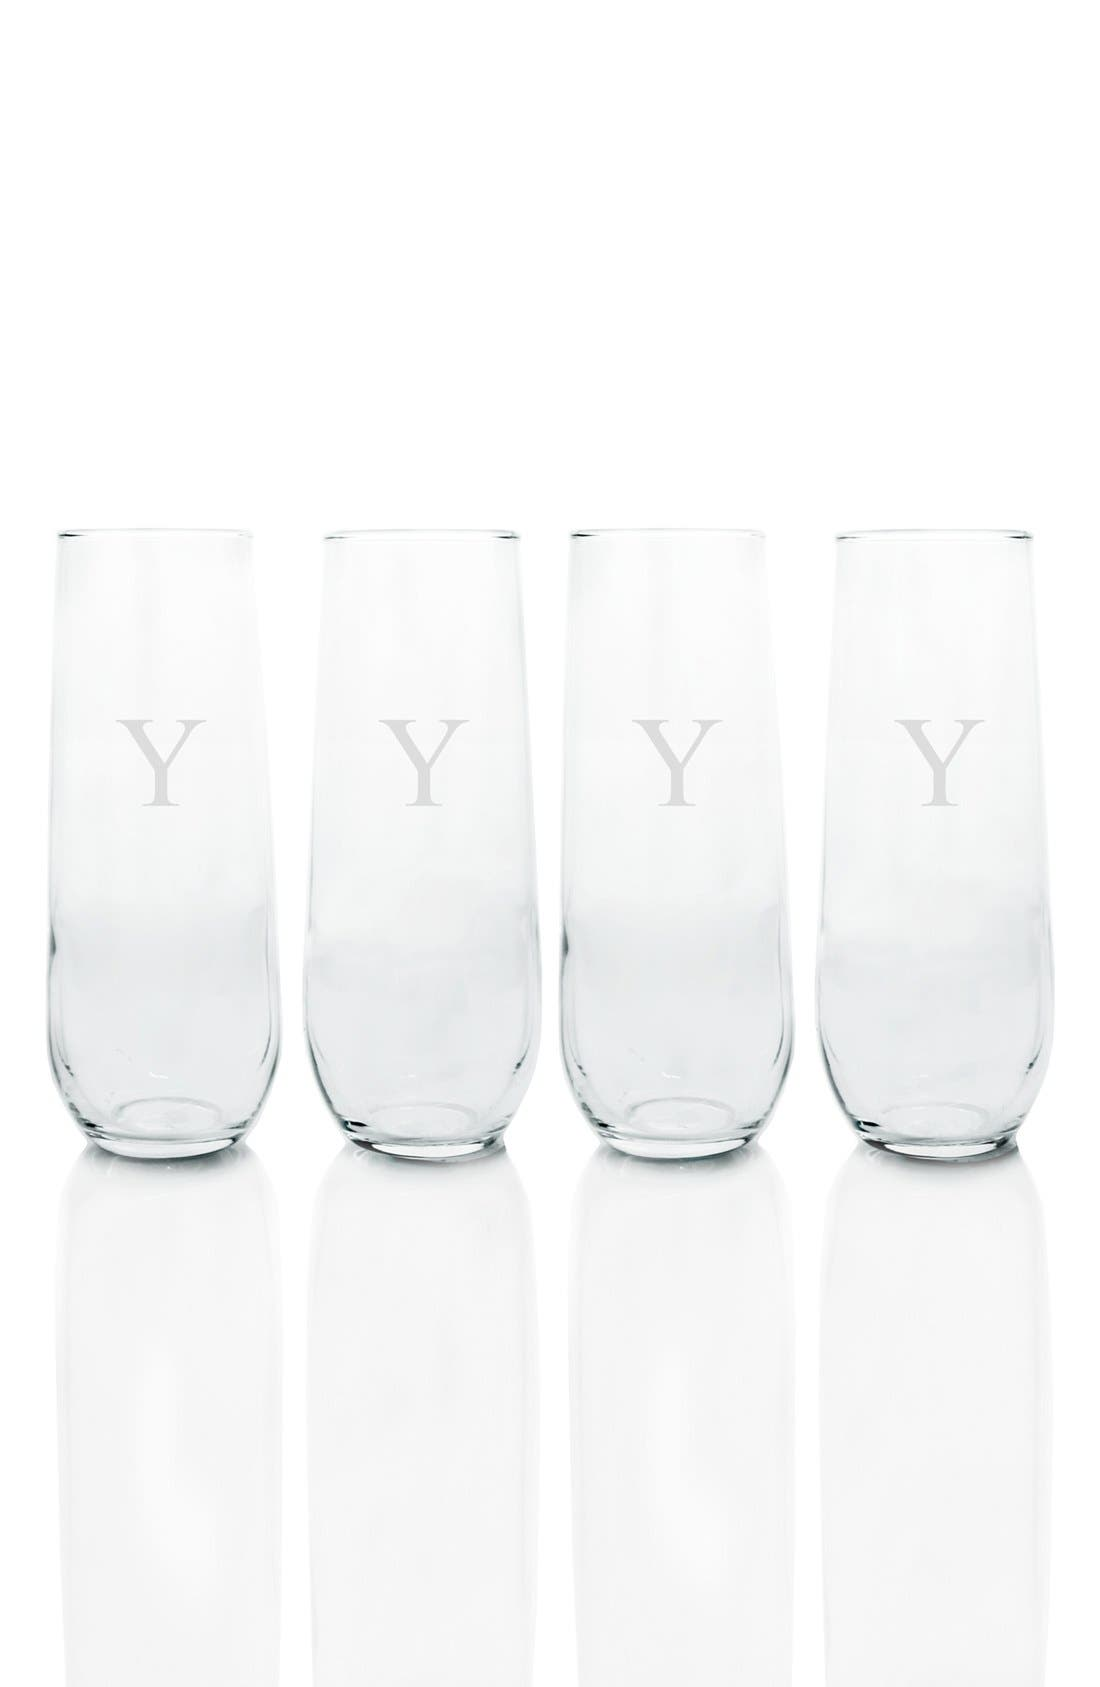 Cathy's Concepts Monogram Stemless Champagne Flutes (Set of 4)